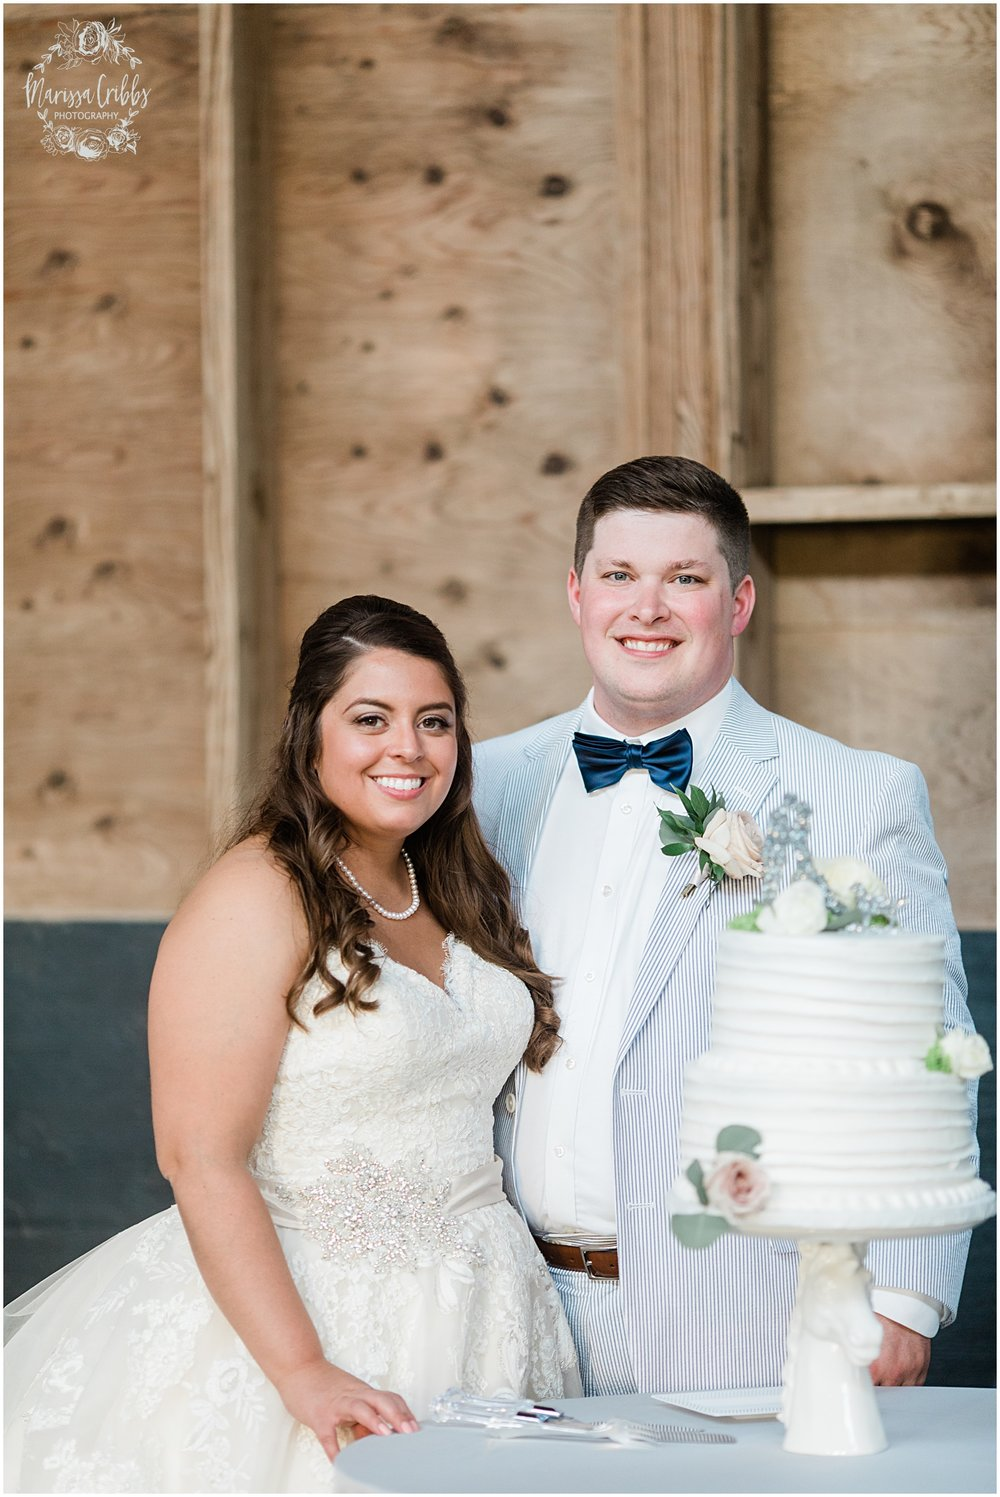 ANDREA & MICHAEL WEDDING | HICKORY CREEK RANCH | MARISSA CRIBBS PHOTOGRAPHY_4899.jpg